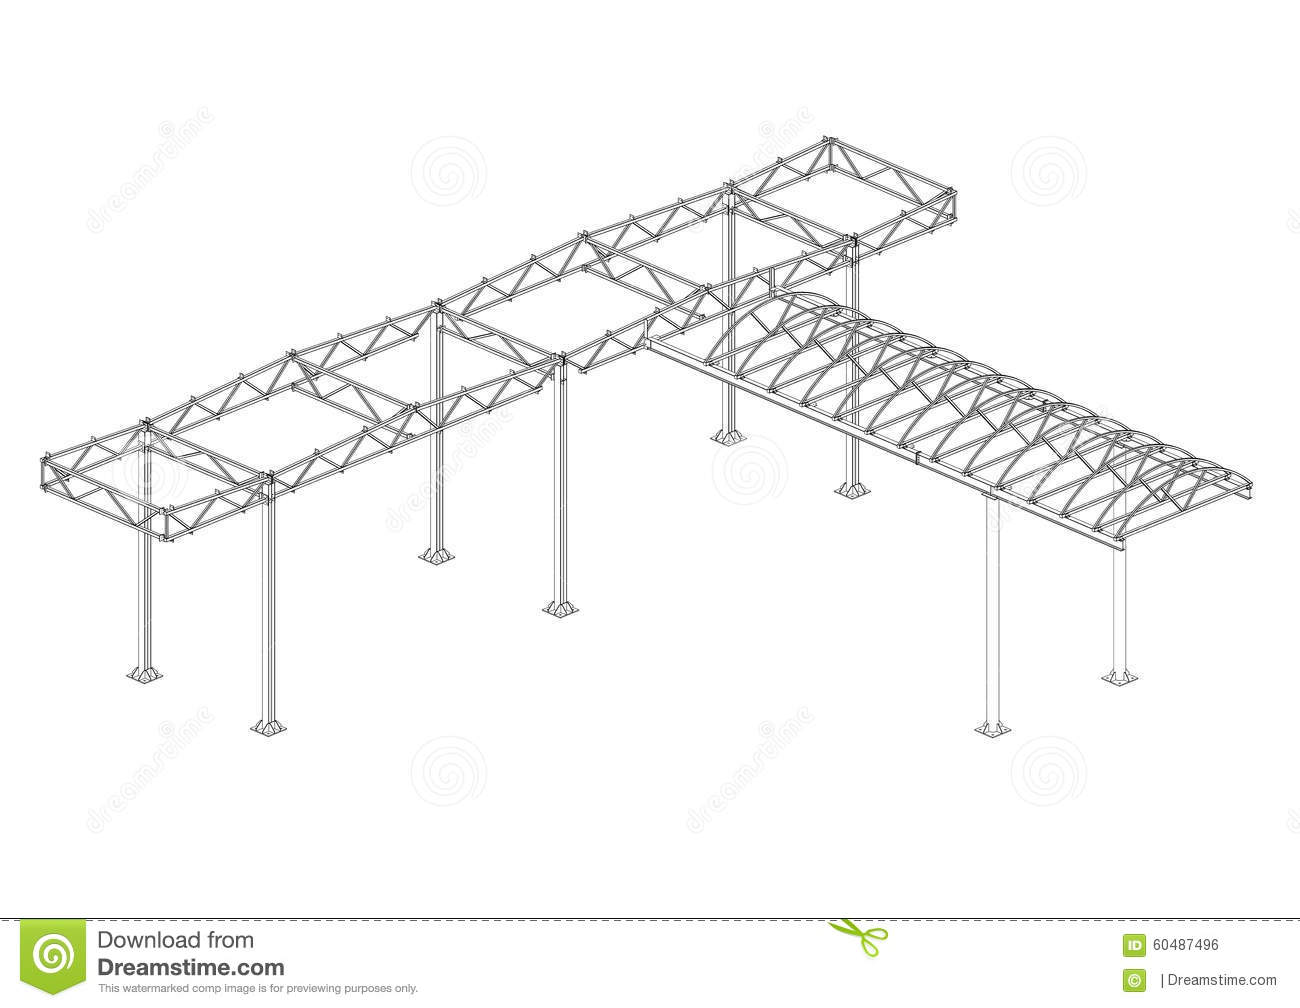 Canopy of steel structures stock illustration. Illustration of fuel ...